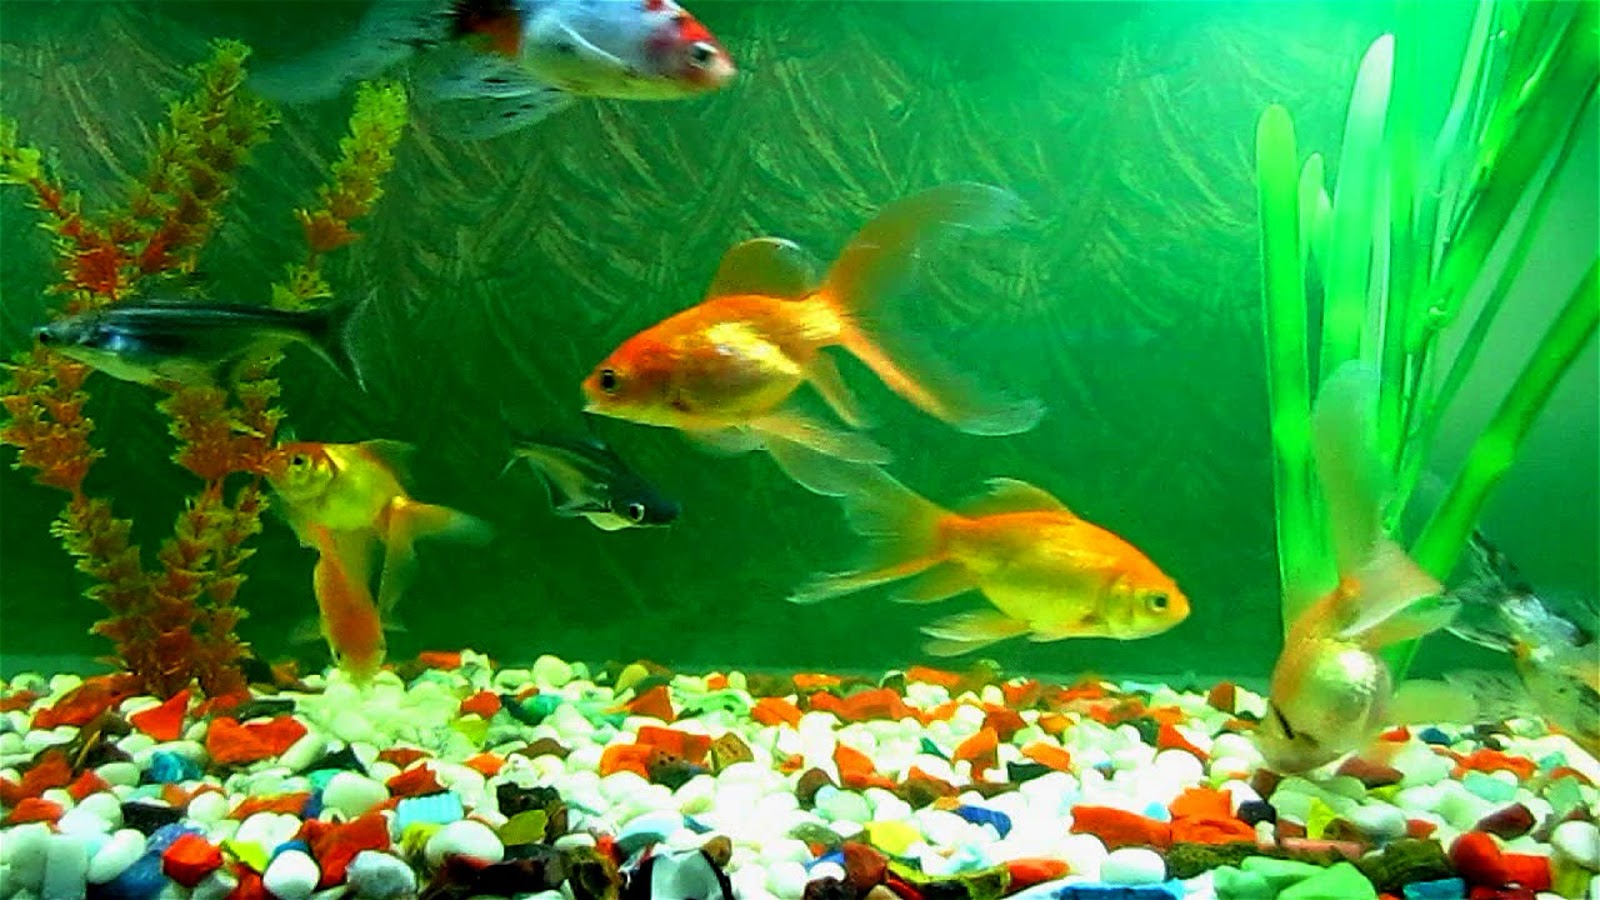 Fish aquarium take care - Fishes Need A Specific Environment Around Them Otherwise They Can Die And There Is A Chance That Size Of Fish Will